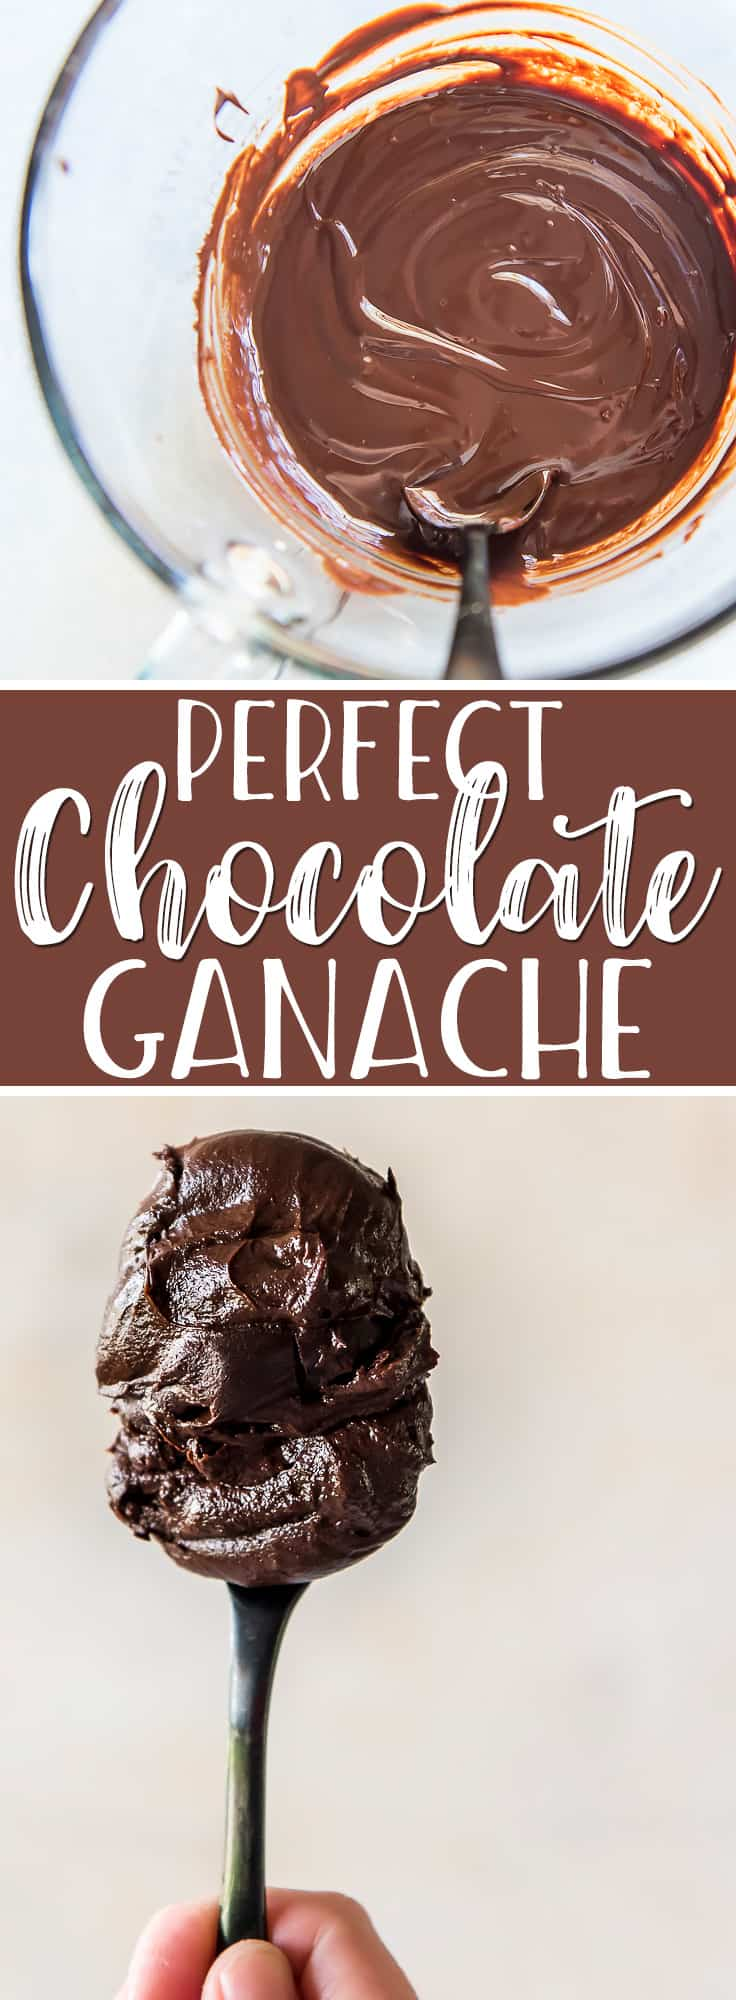 Make this 2-ingredient, 5-minute perfectchocolate ganacheand you'll be pouring it over everything from cakes to ice cream sundaes! This easy, versatile recipe can also be whipped into an icing or turned into the most decadent chocolate truffles.